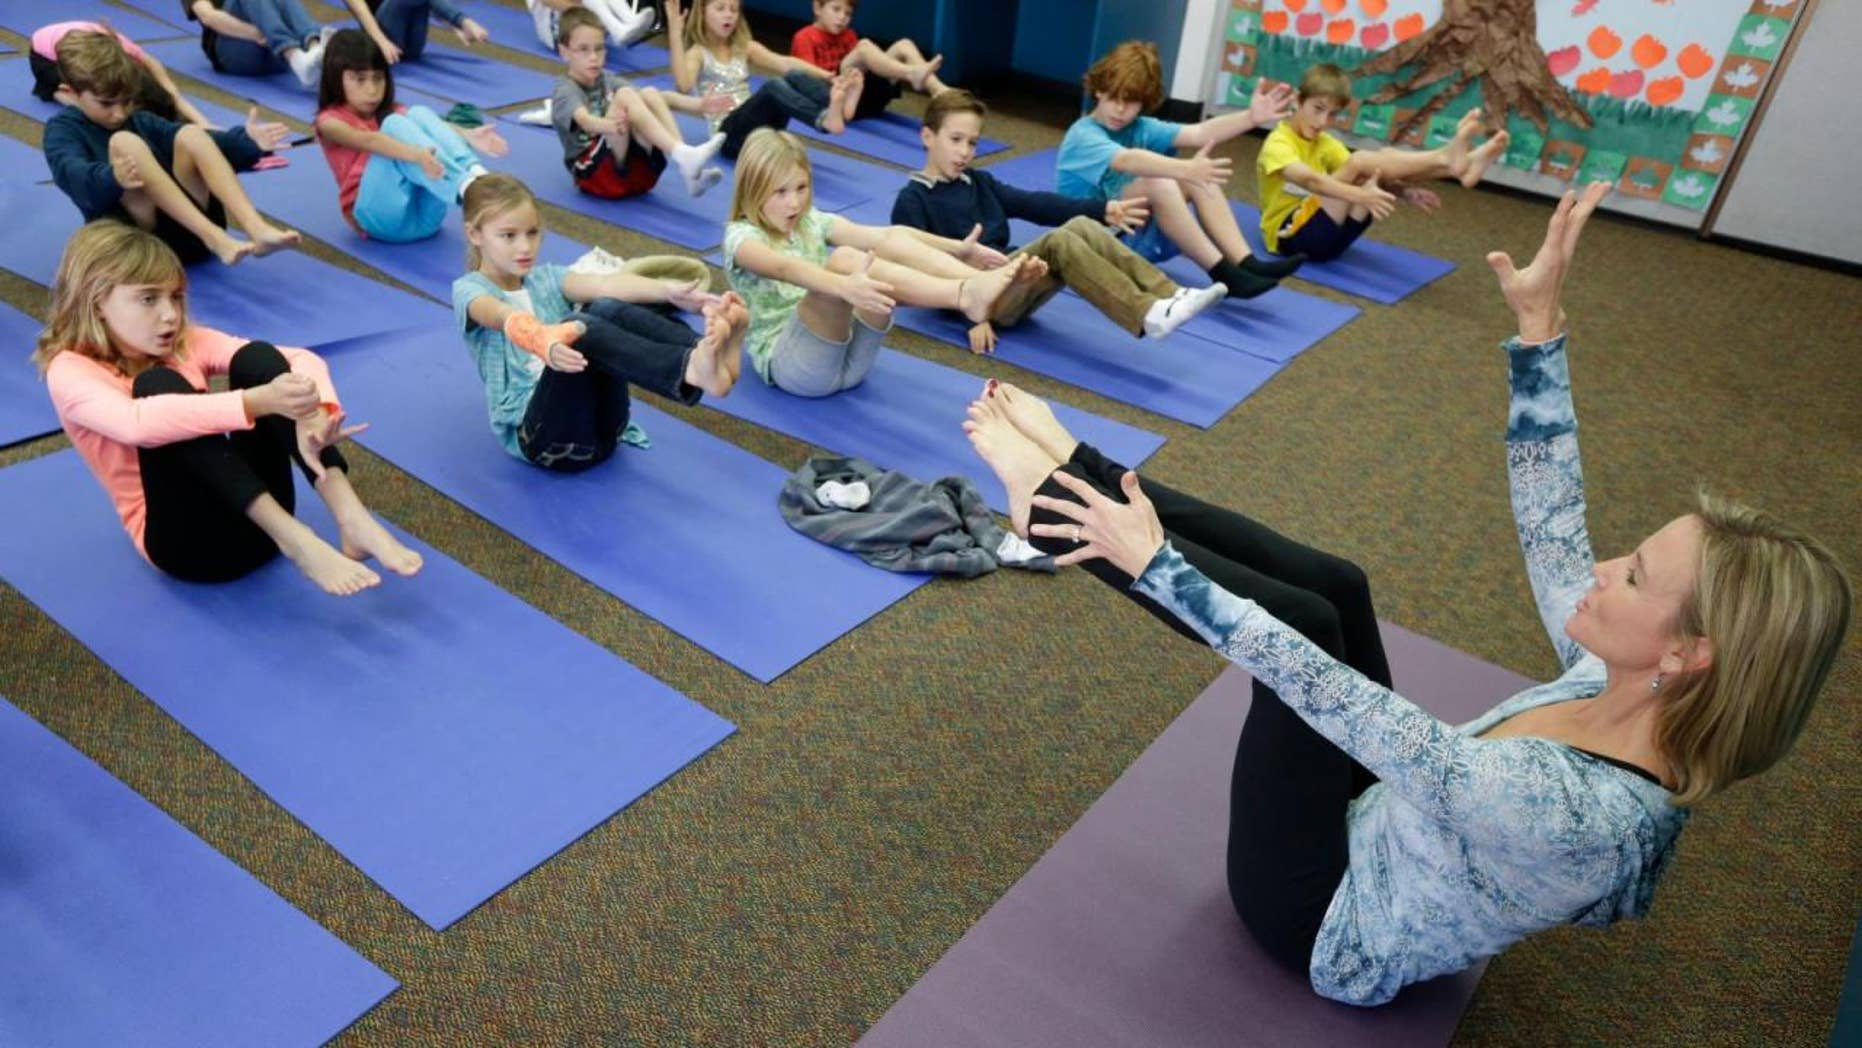 A teacher leads a group of students in a yoga class.